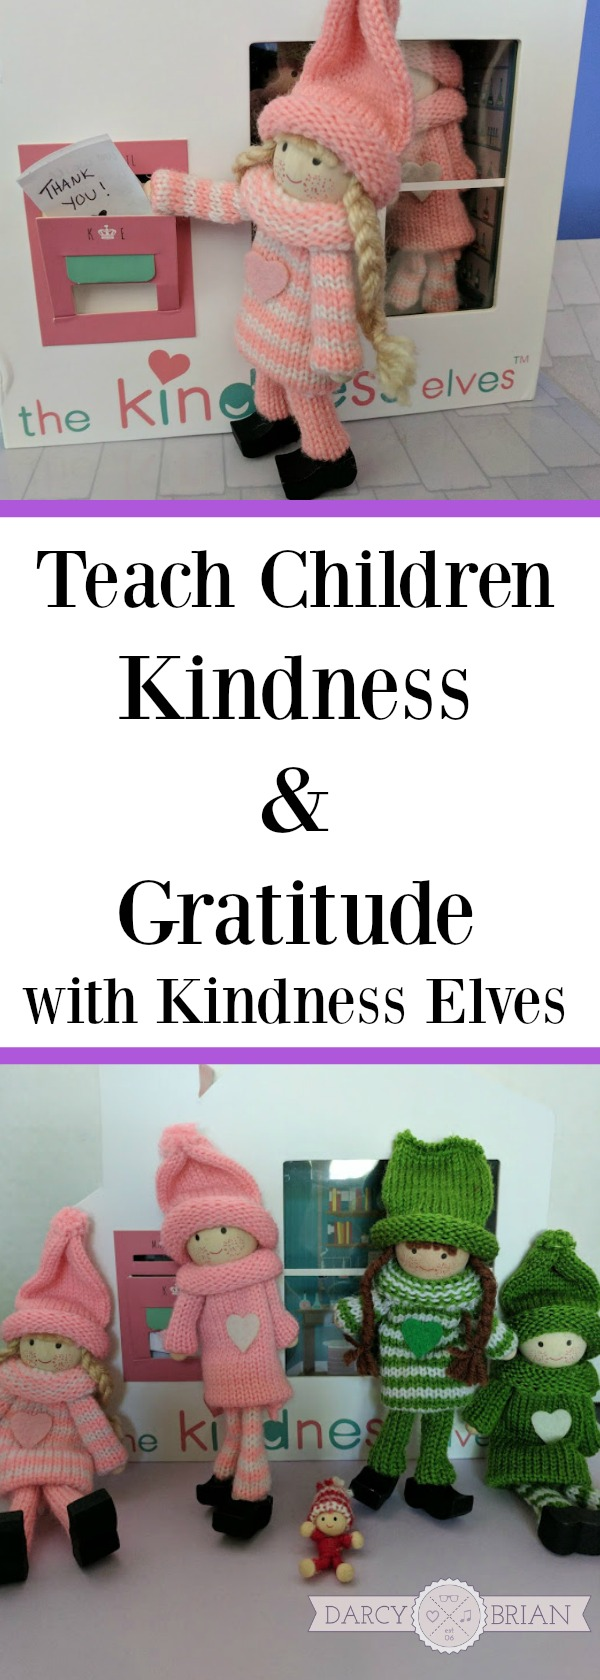 Looking for ways to teach children kindness and gratitude? Here are some ideas on how to use Kindness Elves to create positive habits within your family.